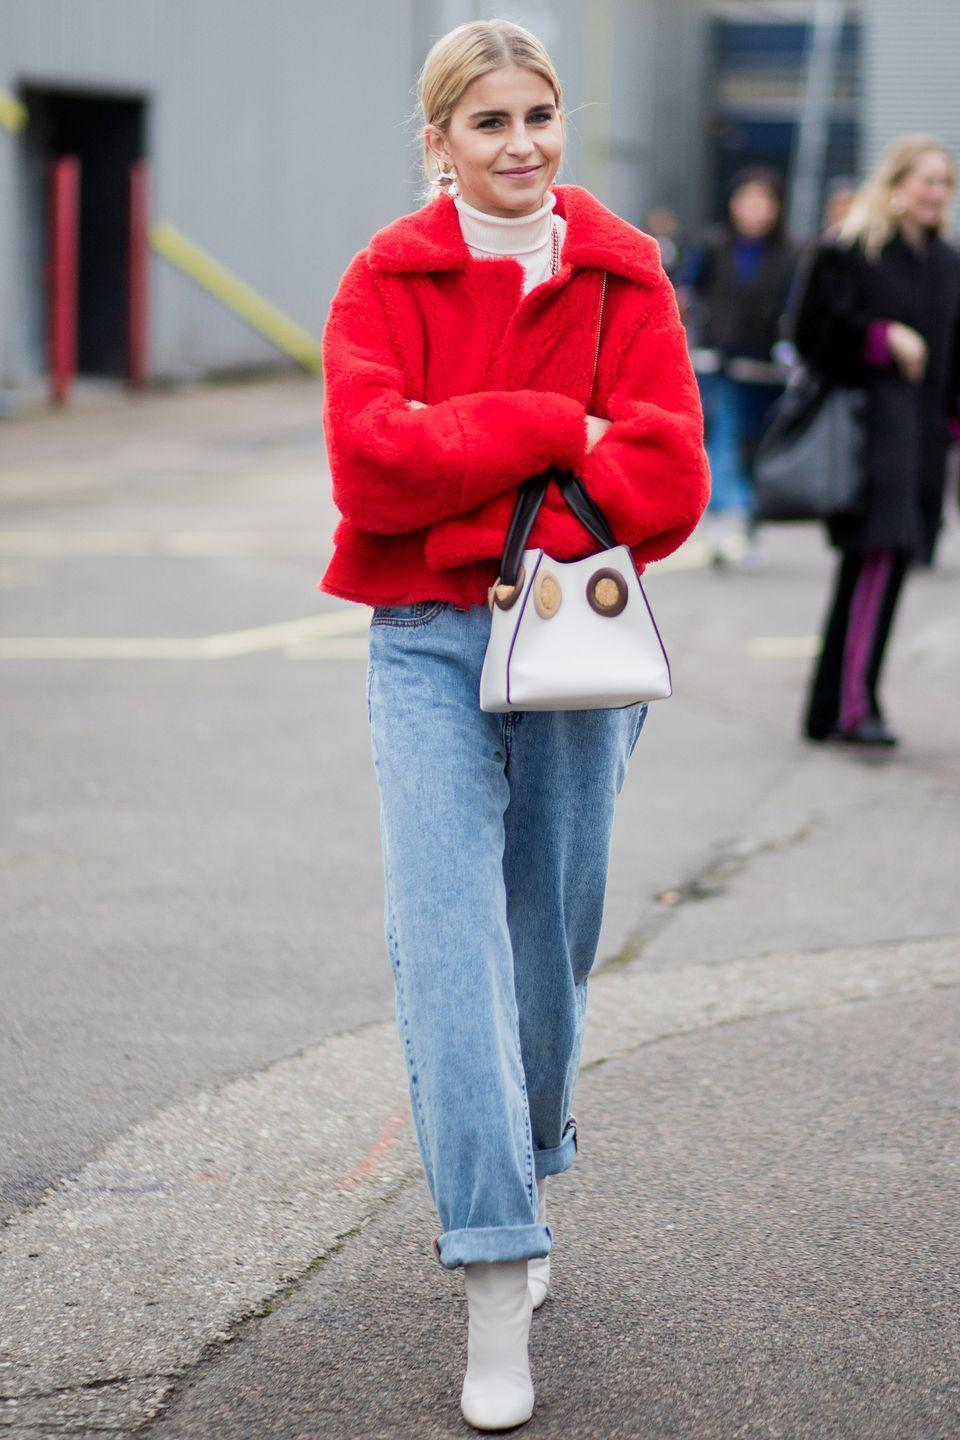 <p>Roll up your jeans to show off the boot, rather than wearing them to the ground.</p>